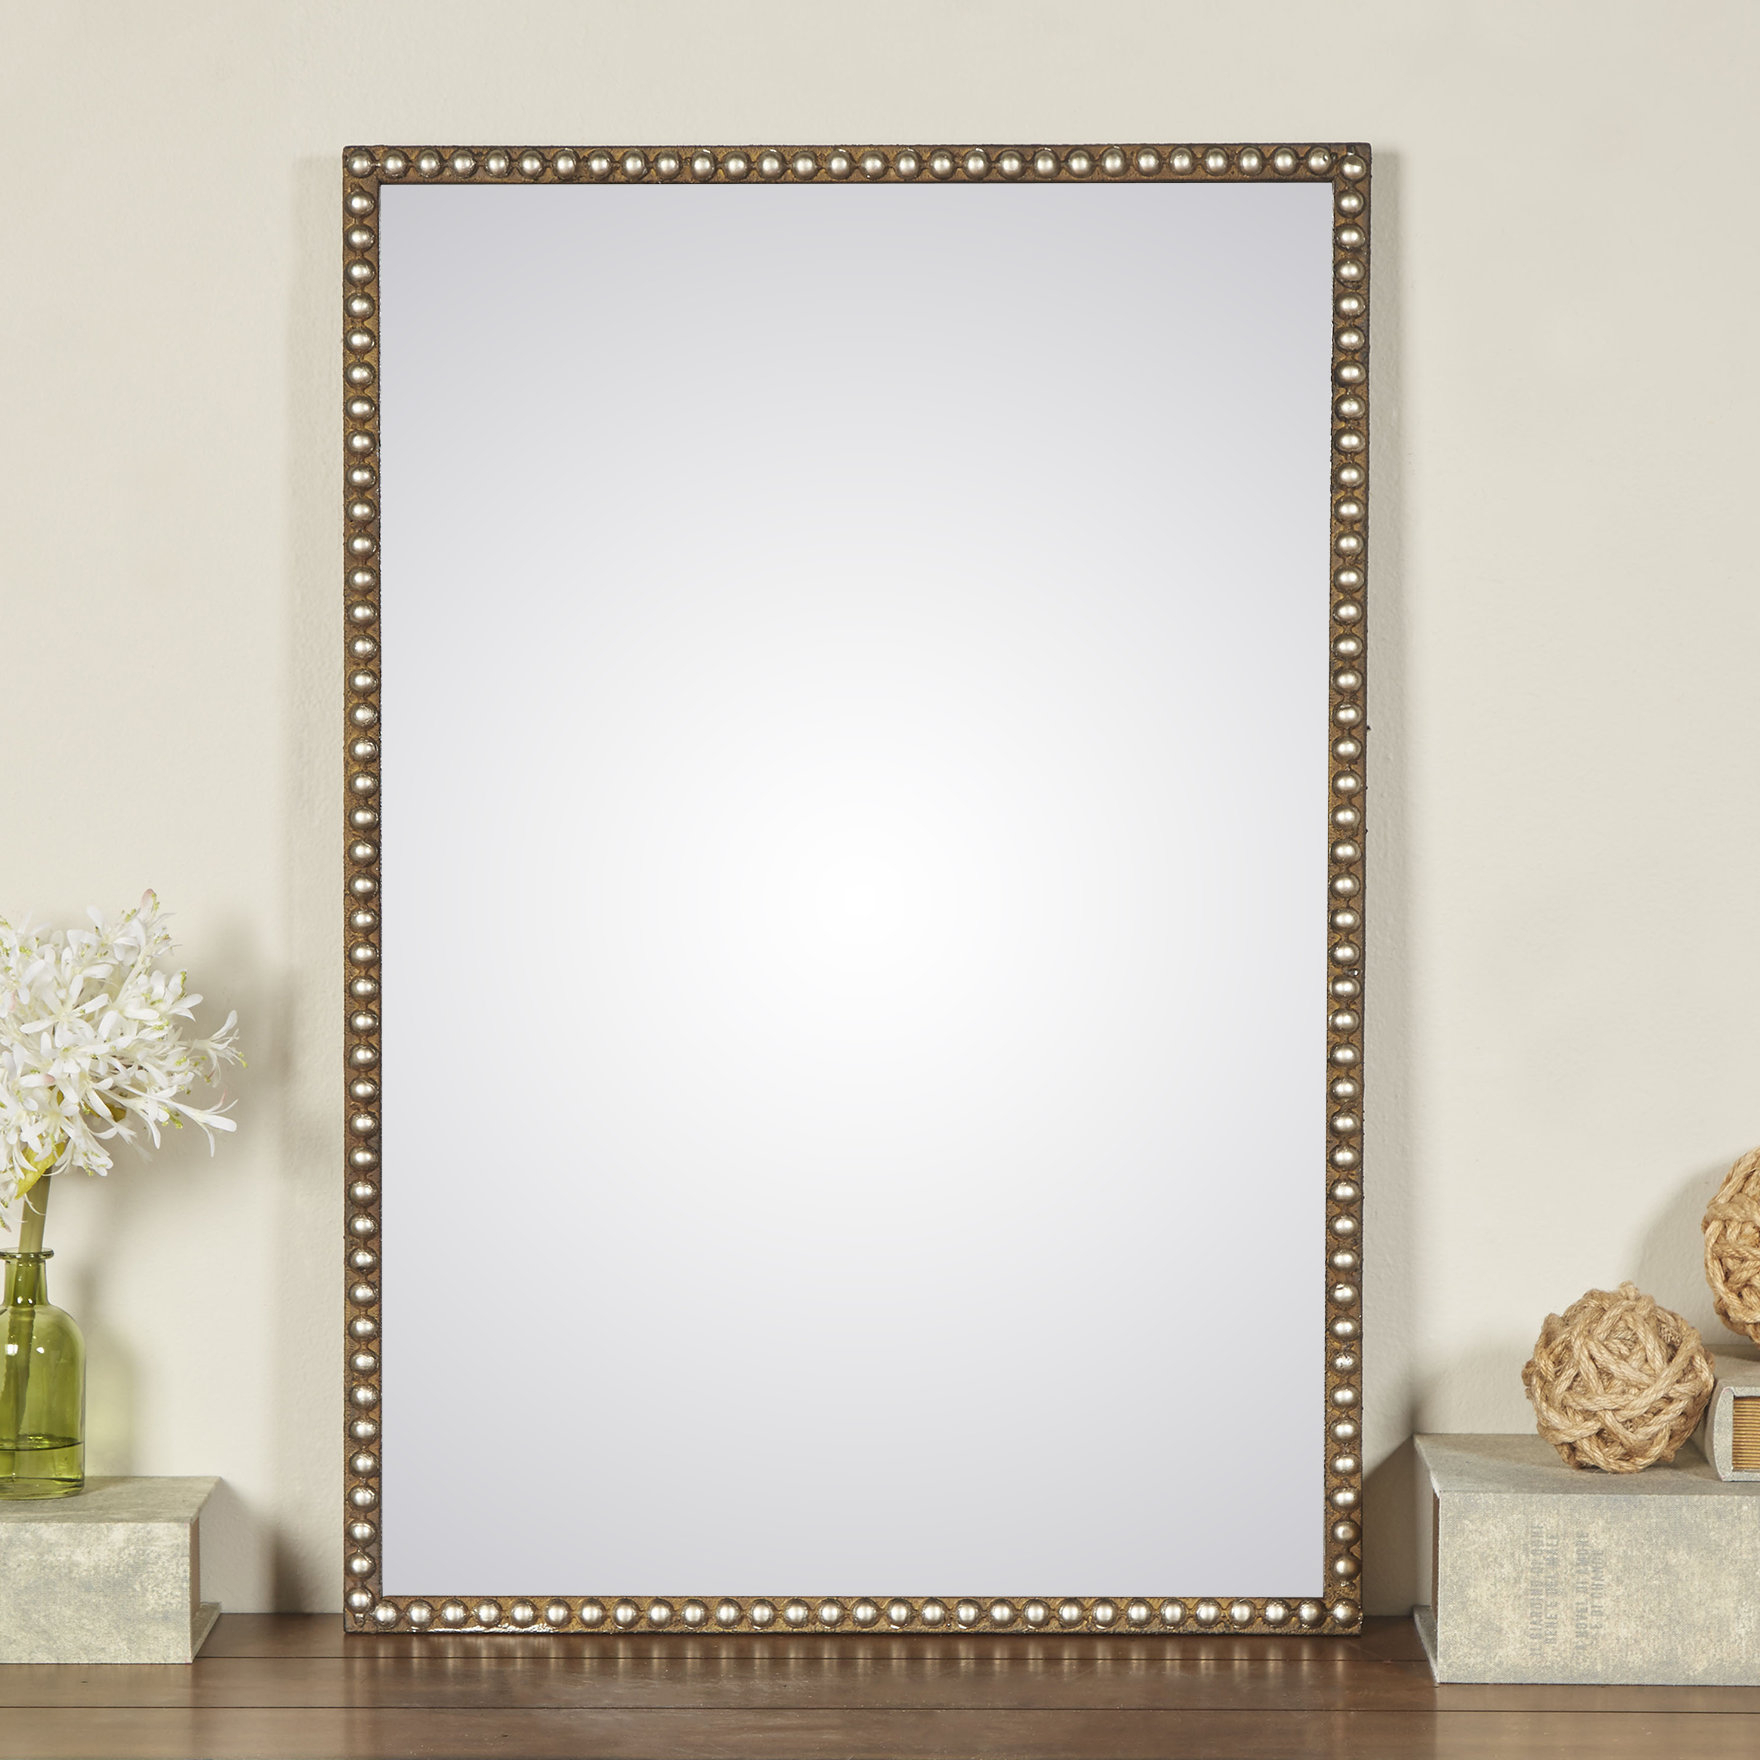 Pioche Traditional Wall Mirror & Reviews | Birch Lane In Glen View Beaded Oval Traditional Accent Mirrors (View 7 of 20)